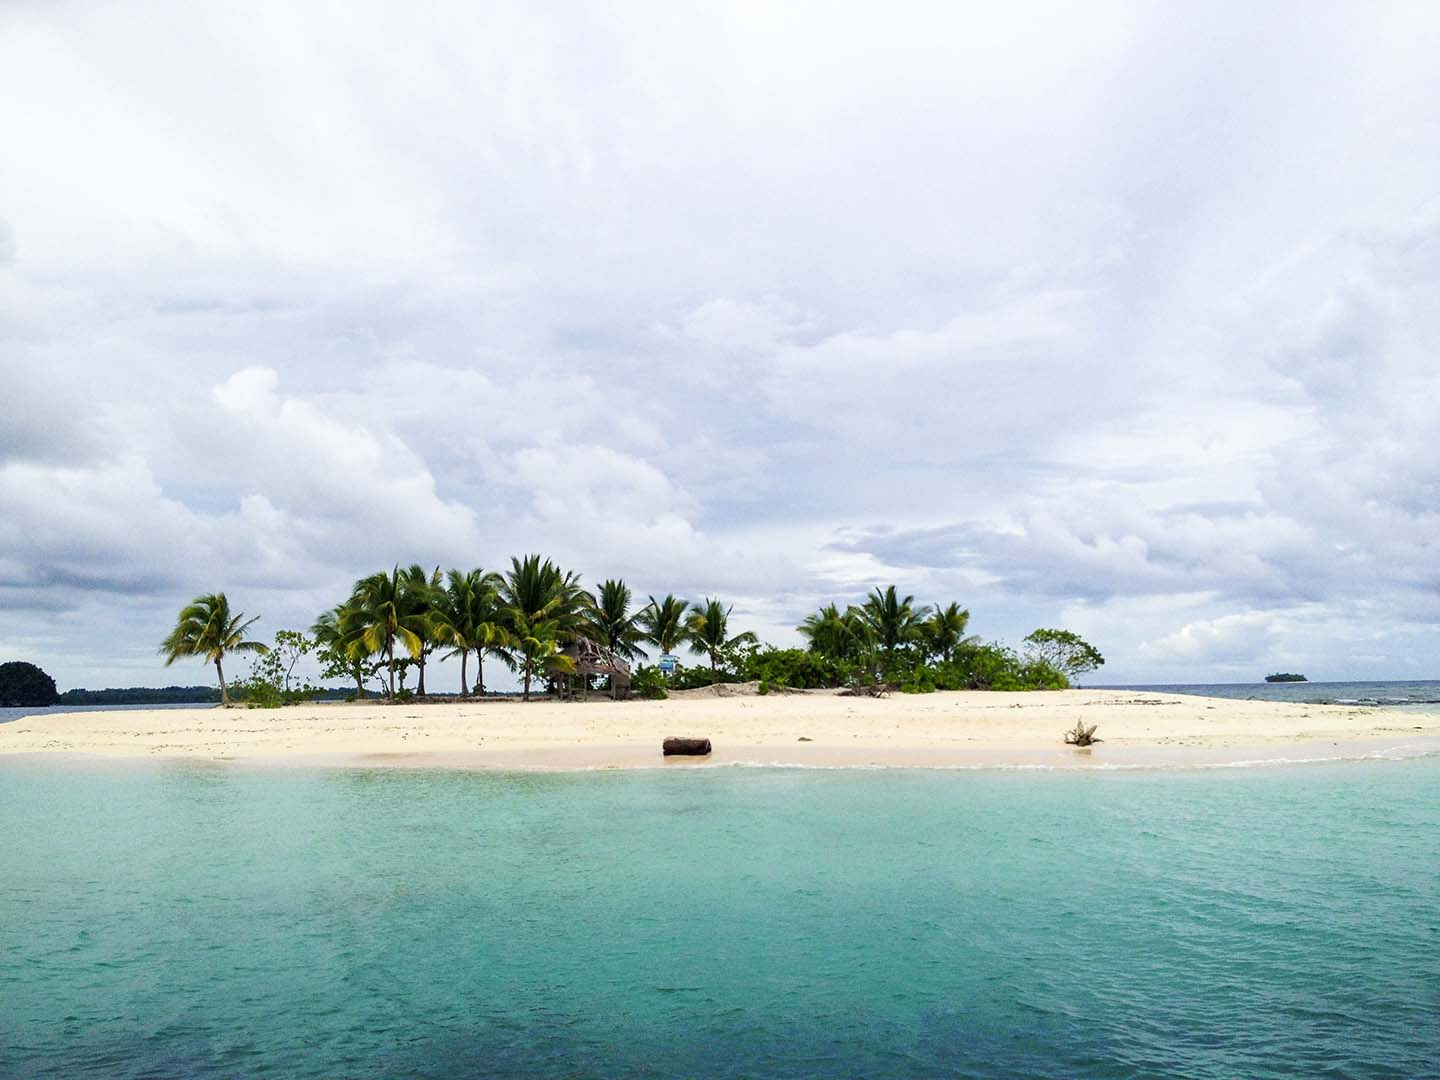 White beaches in the Philippines